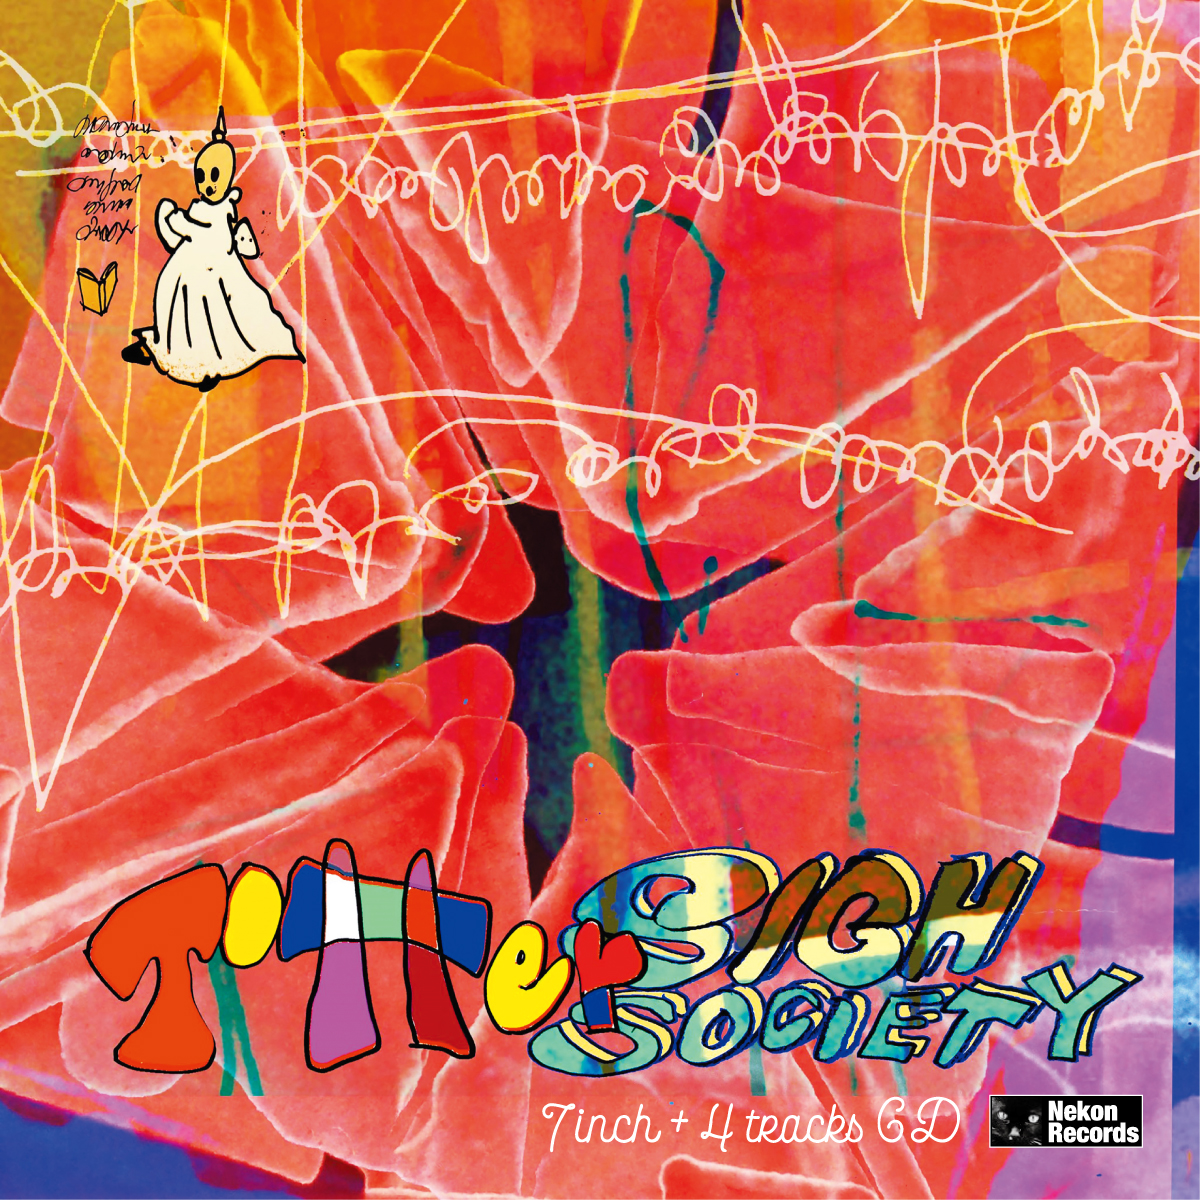 Sigh Society / Totter (feat. Inko) 7inch Edit